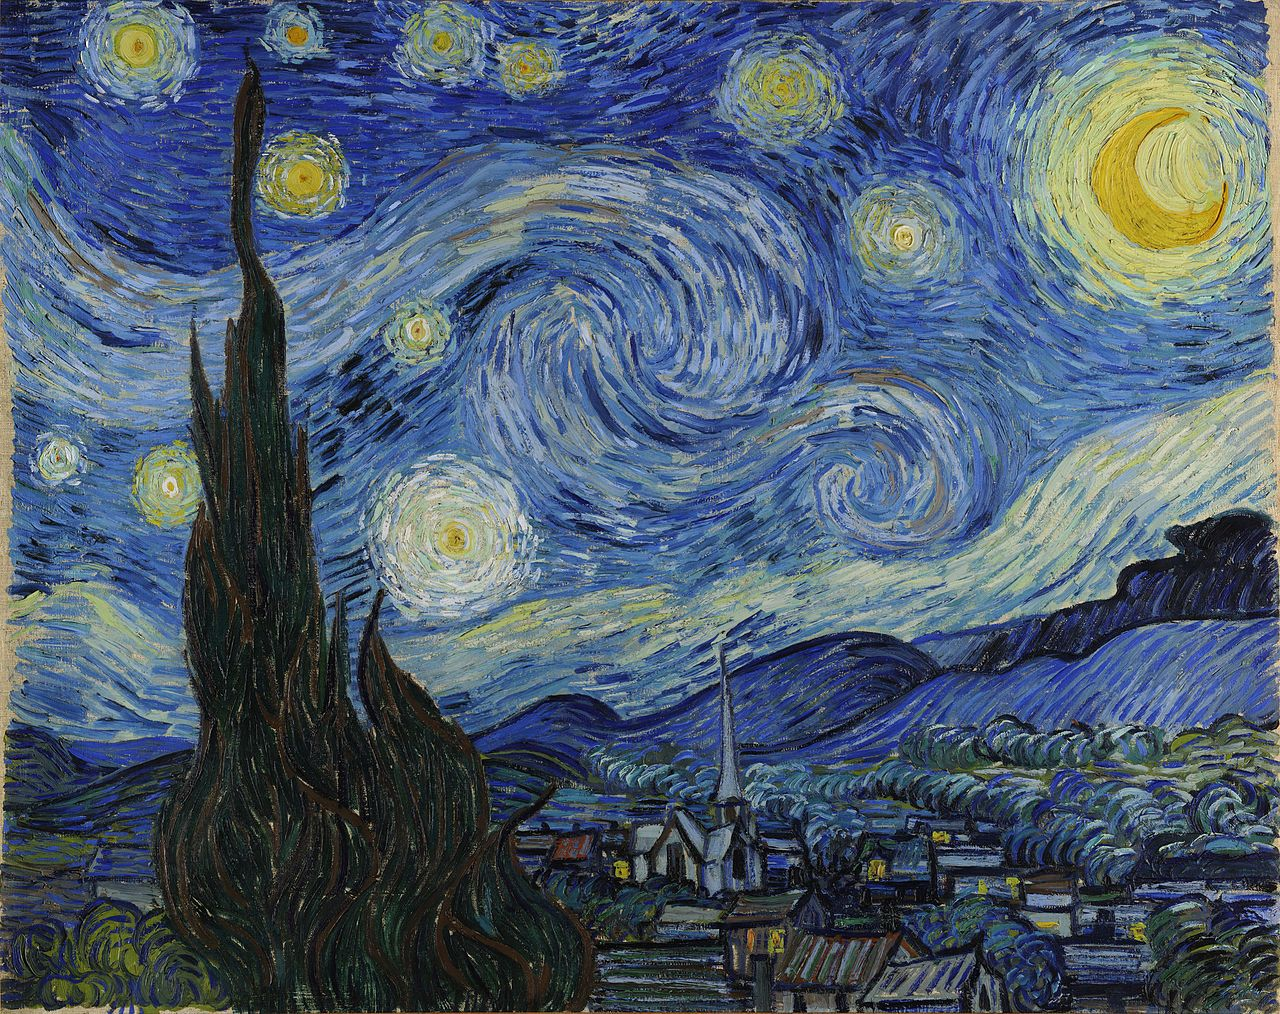 Google 'Art Zoom', Pop Musicians Give a Guided Tour of Ultra High Resolution Images of Iconic Works of Art